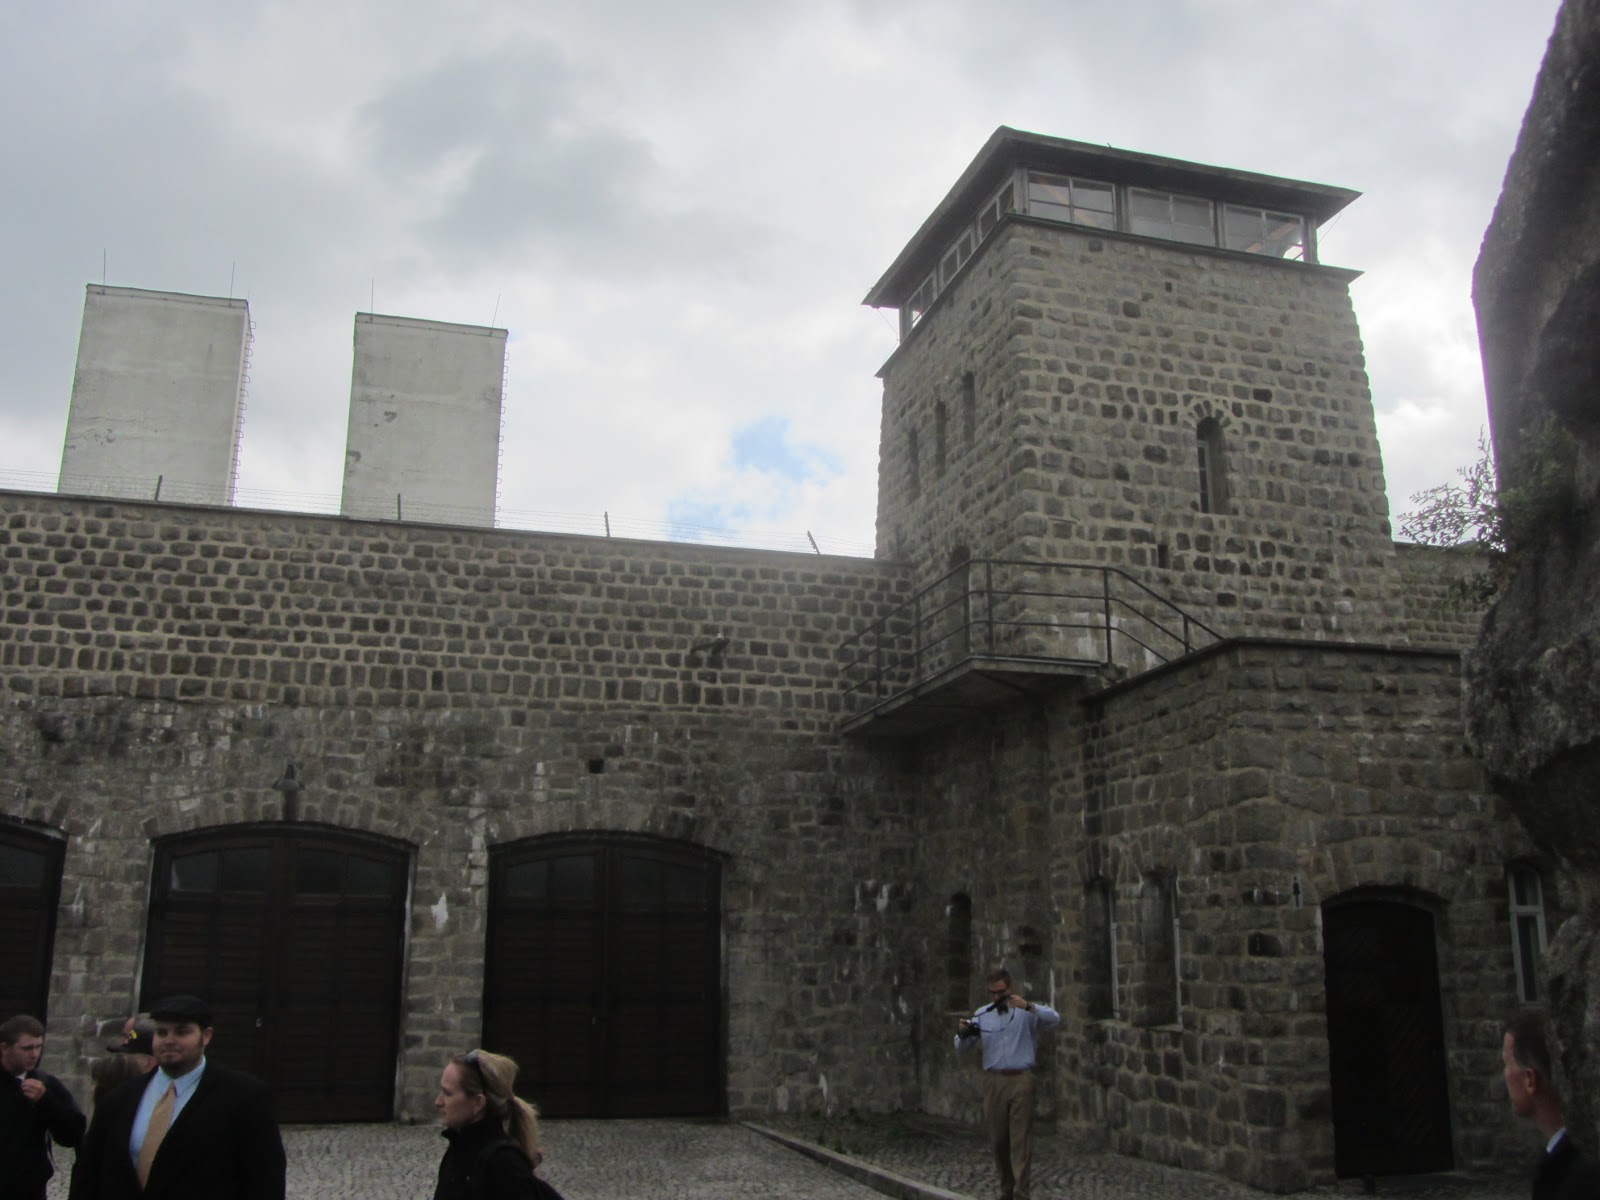 Where Murder Was a Way of Life: The Mauthausen